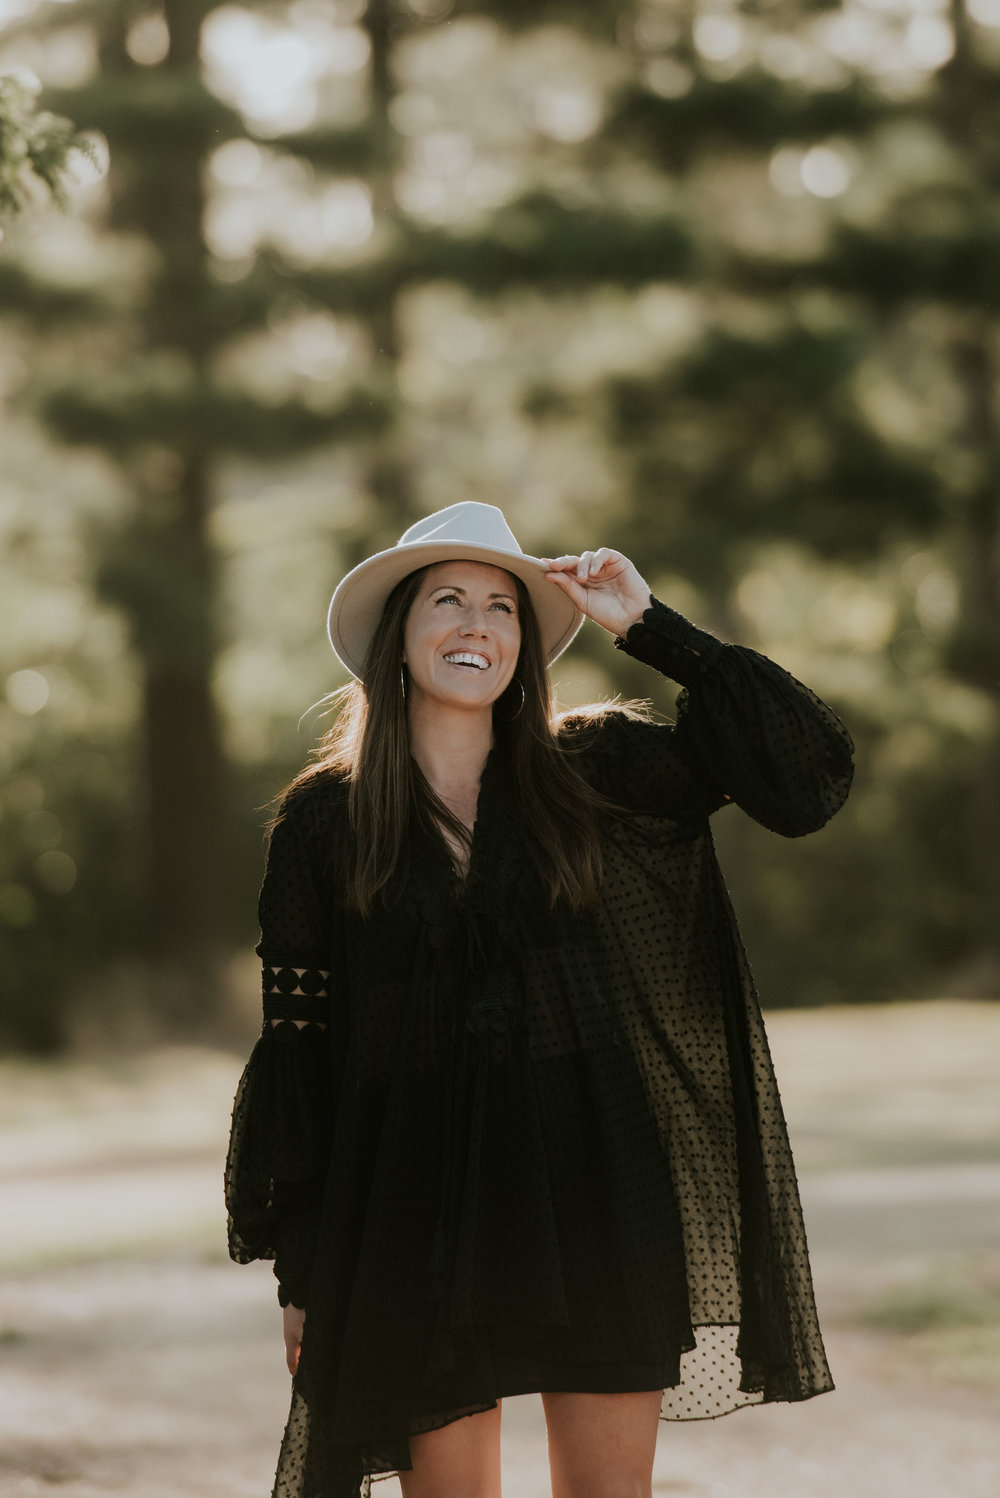 Hi there, thanks for wandering by! - I'm Laurie, the main lady behind The Wedding Wanderer. I'm a marriage celebrant, wedding stylist and founder of The White Dress Movement. Everything I do here is underpinned by a philosophy of creating unique, bohemian experiences that wholeheartedly reflect your love story, but also have the purpose of paying it forward.